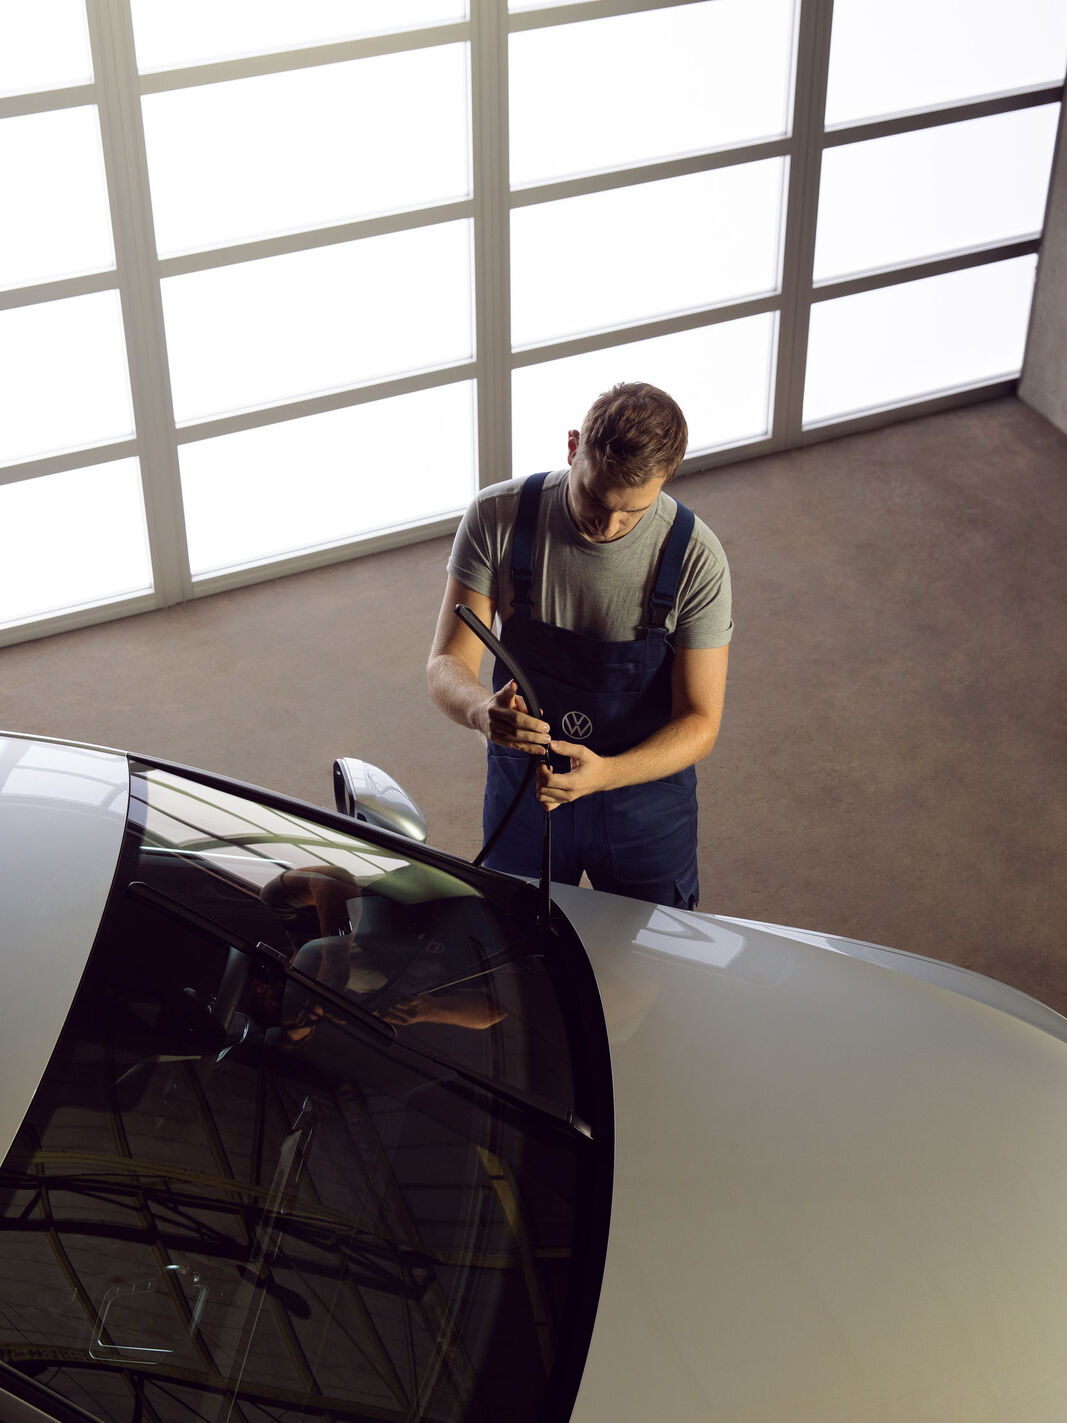 Volkswagen Repair and service for your vehicle | VW Service